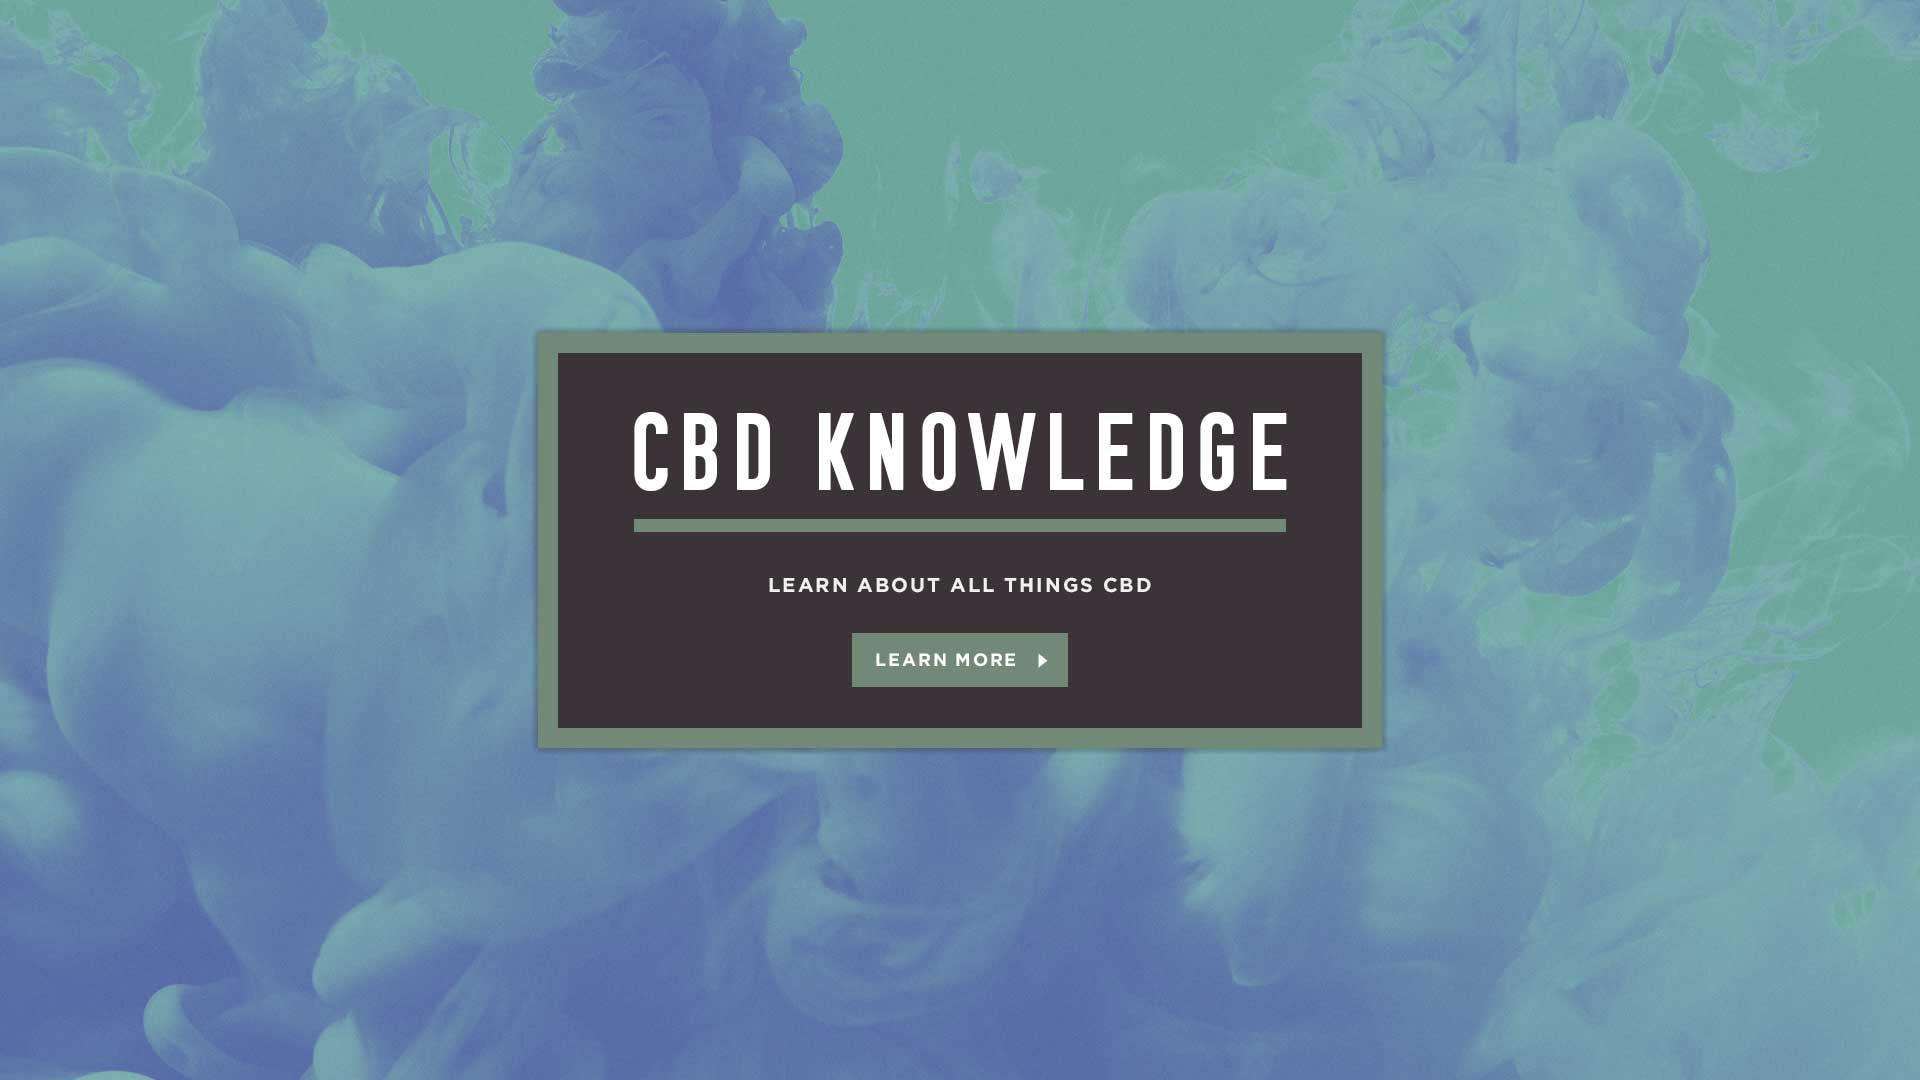 Learn about all things CBD at mondocbd.co.uk